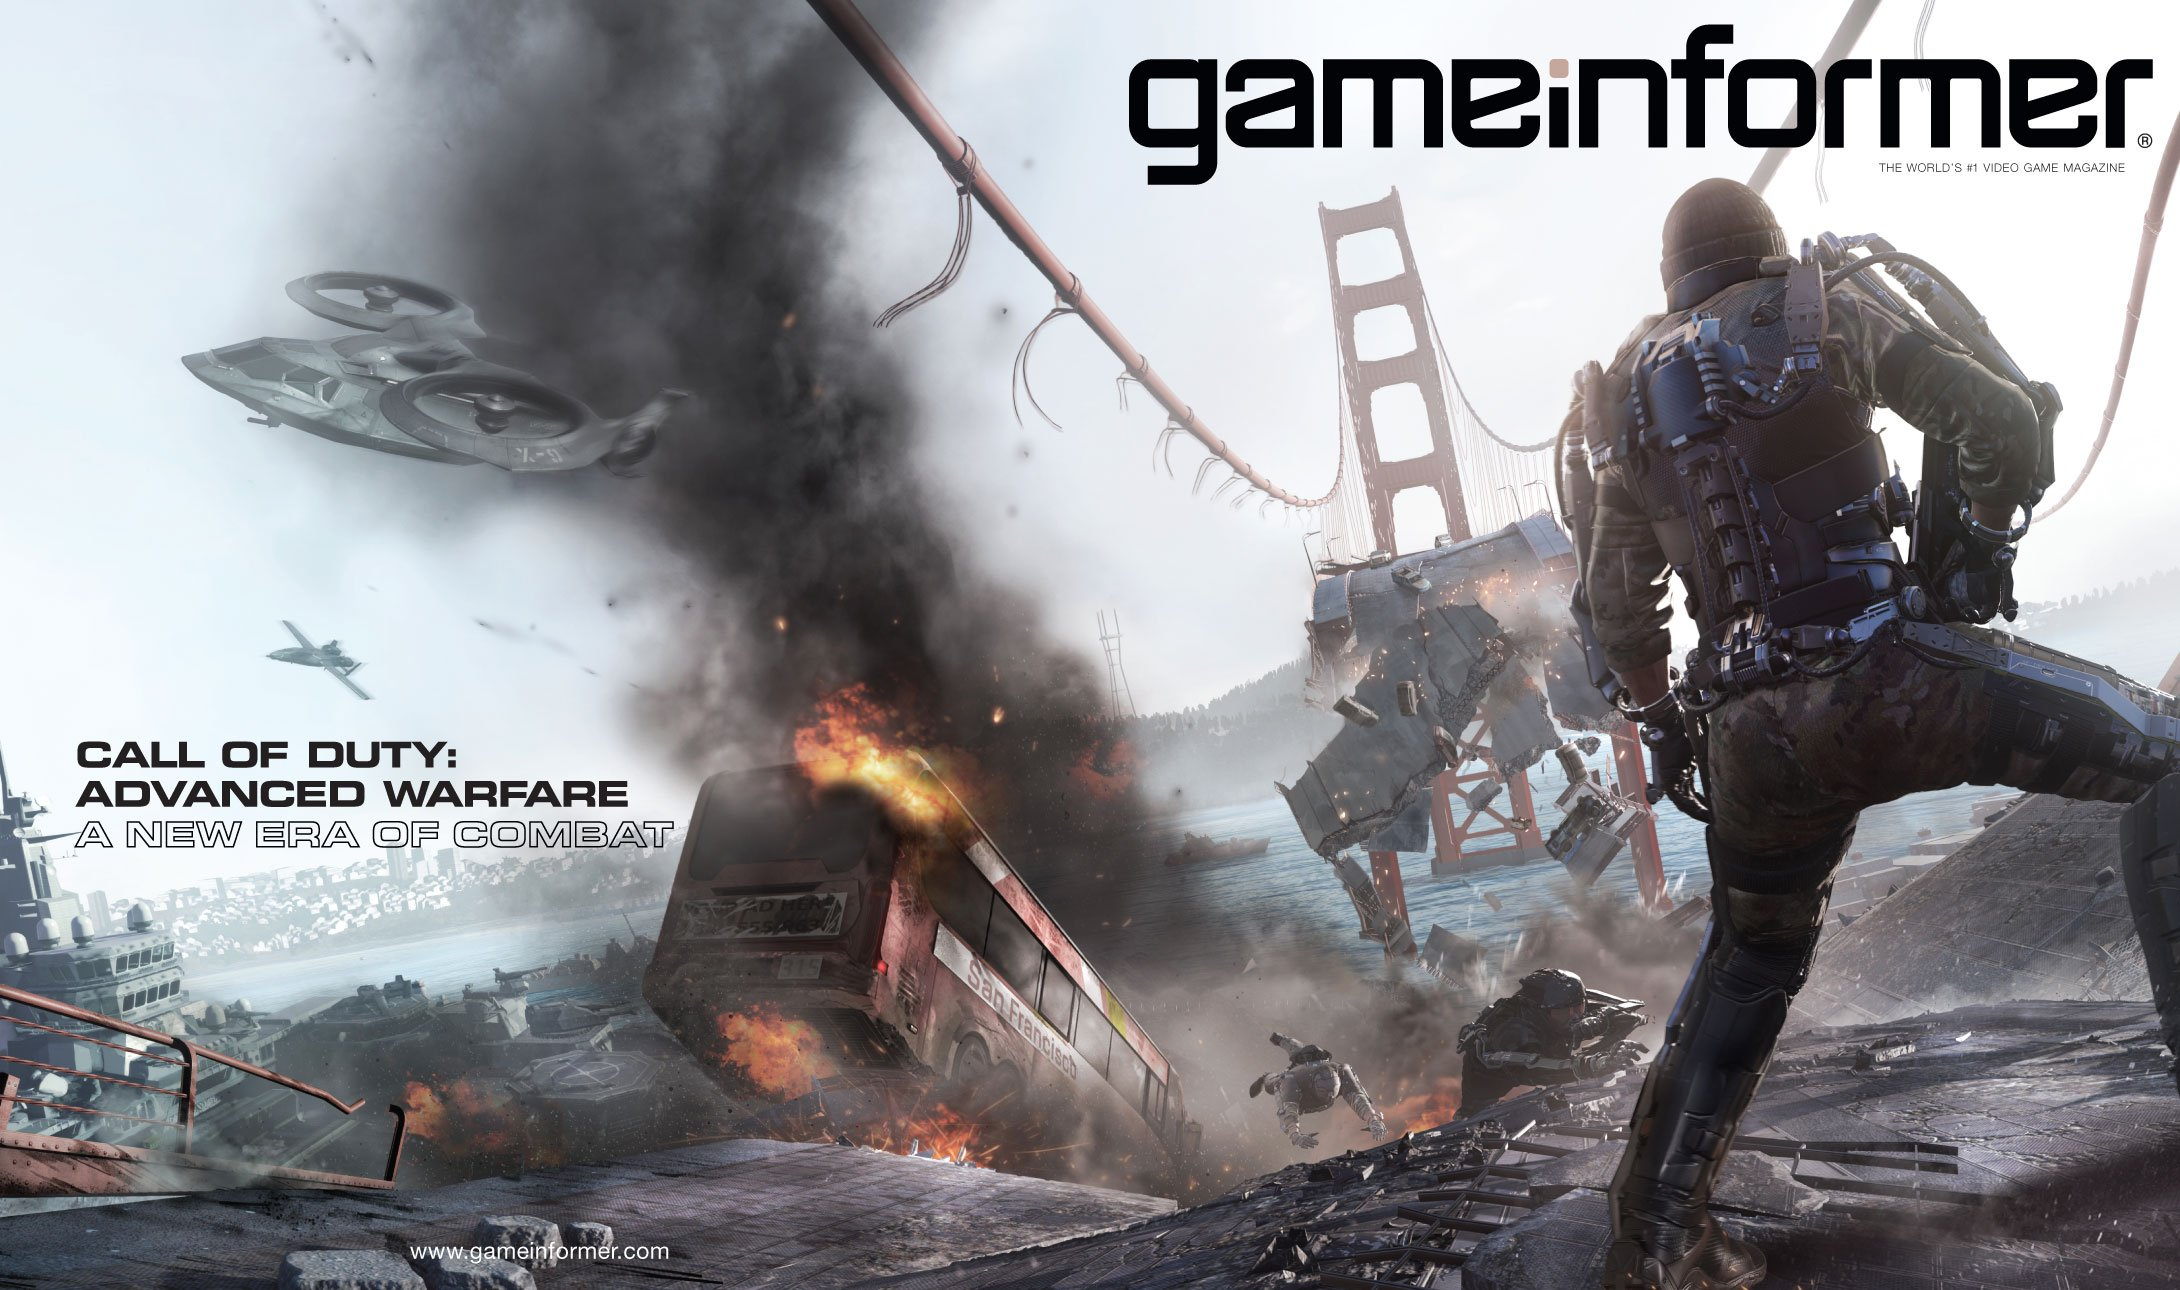 Call of Duty: Advanced Warfare на обложке GameInformer - Изображение 1